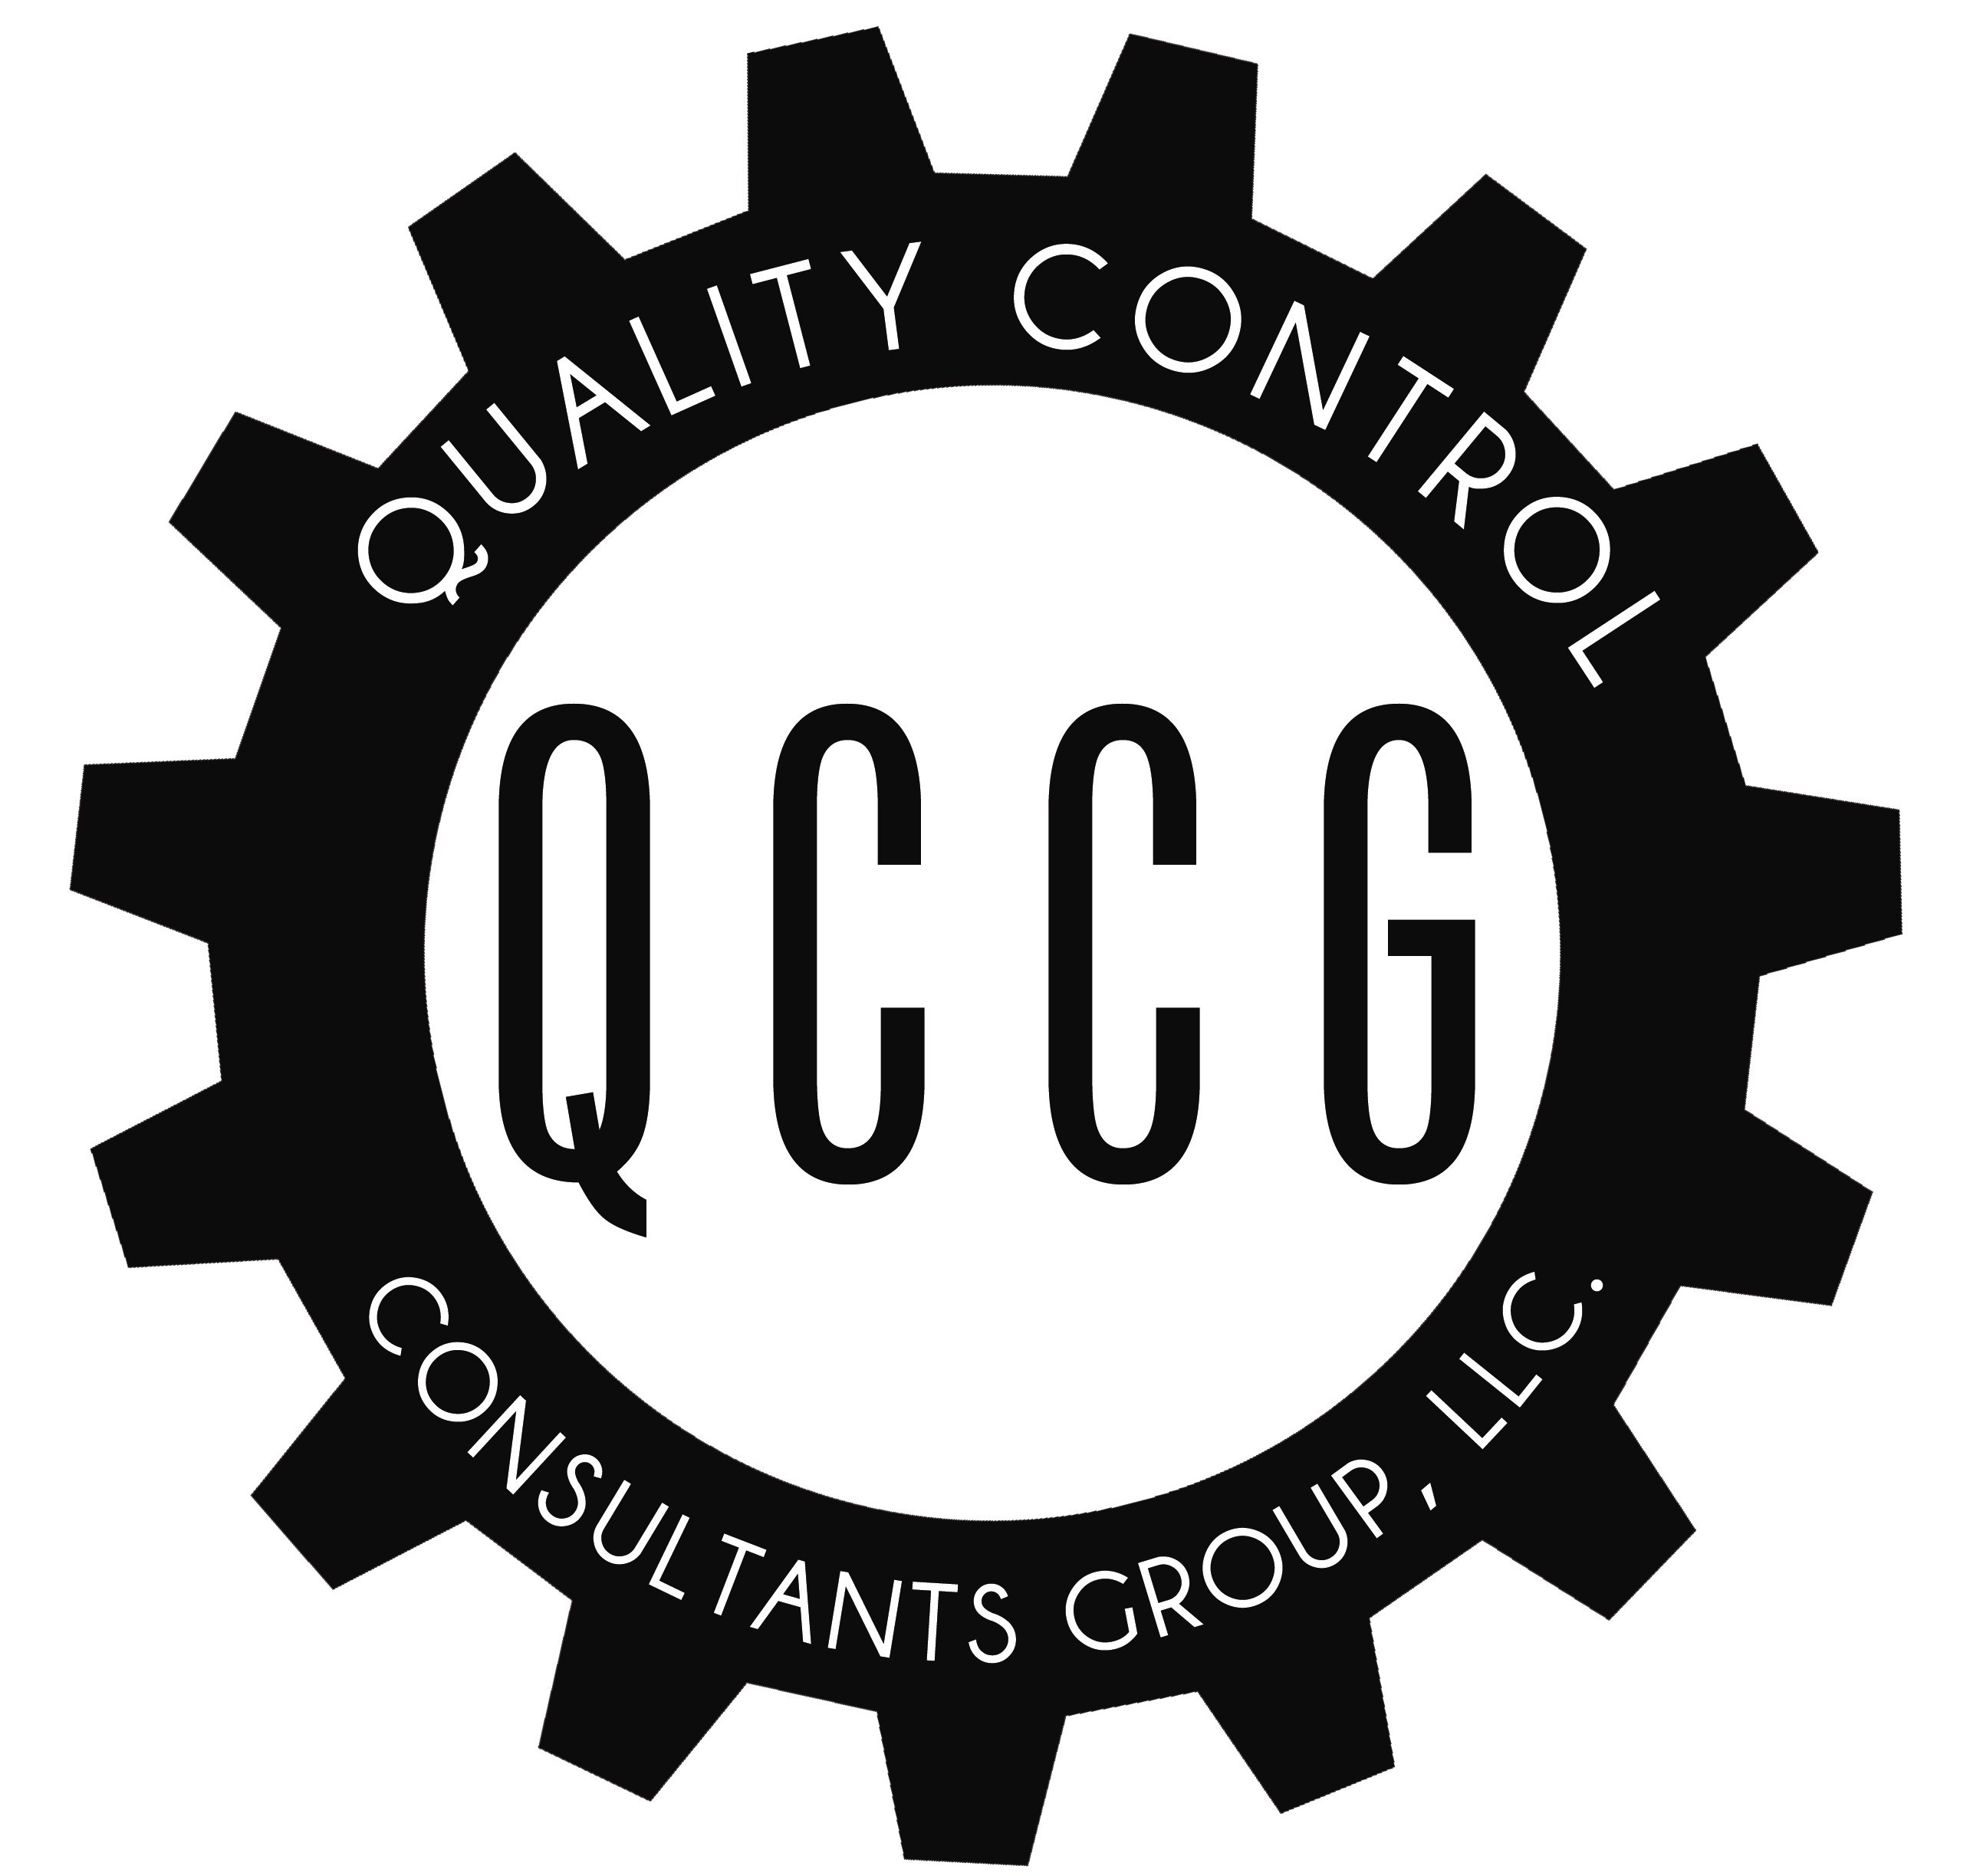 Quality Control Consultants Group, LLC image 0